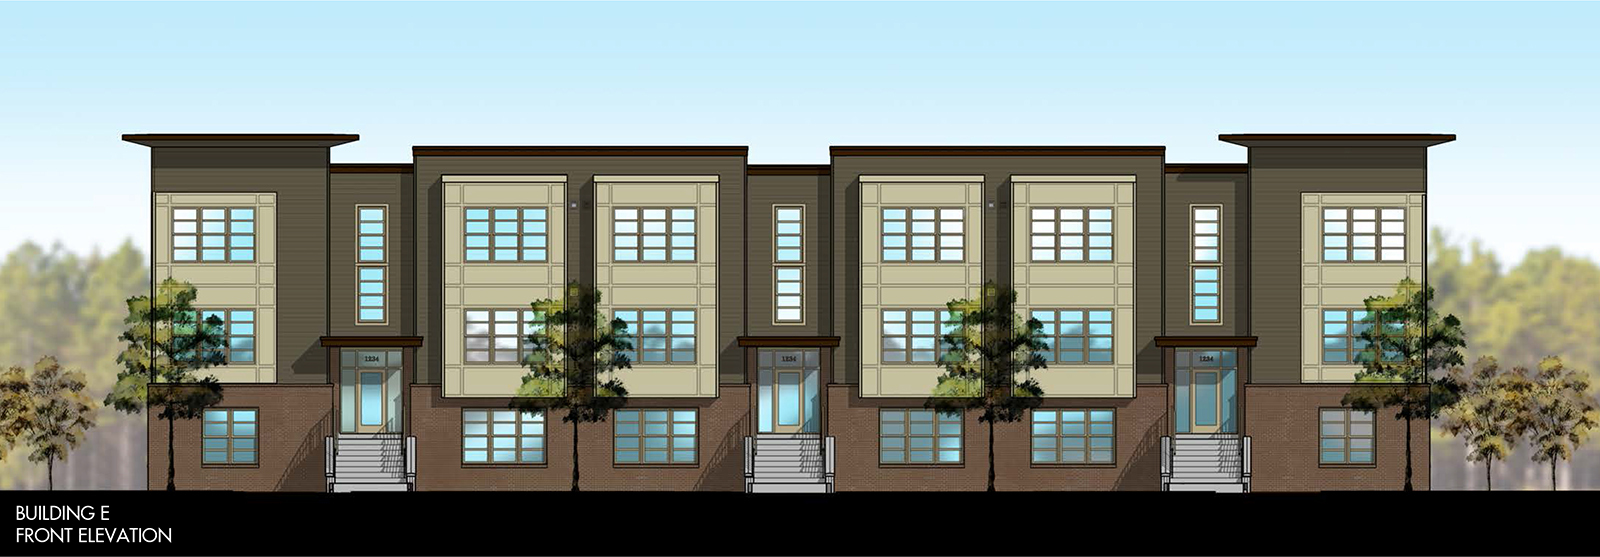 red closes 37 7m construction loan for a class a multifamily project in premier northeast. Black Bedroom Furniture Sets. Home Design Ideas